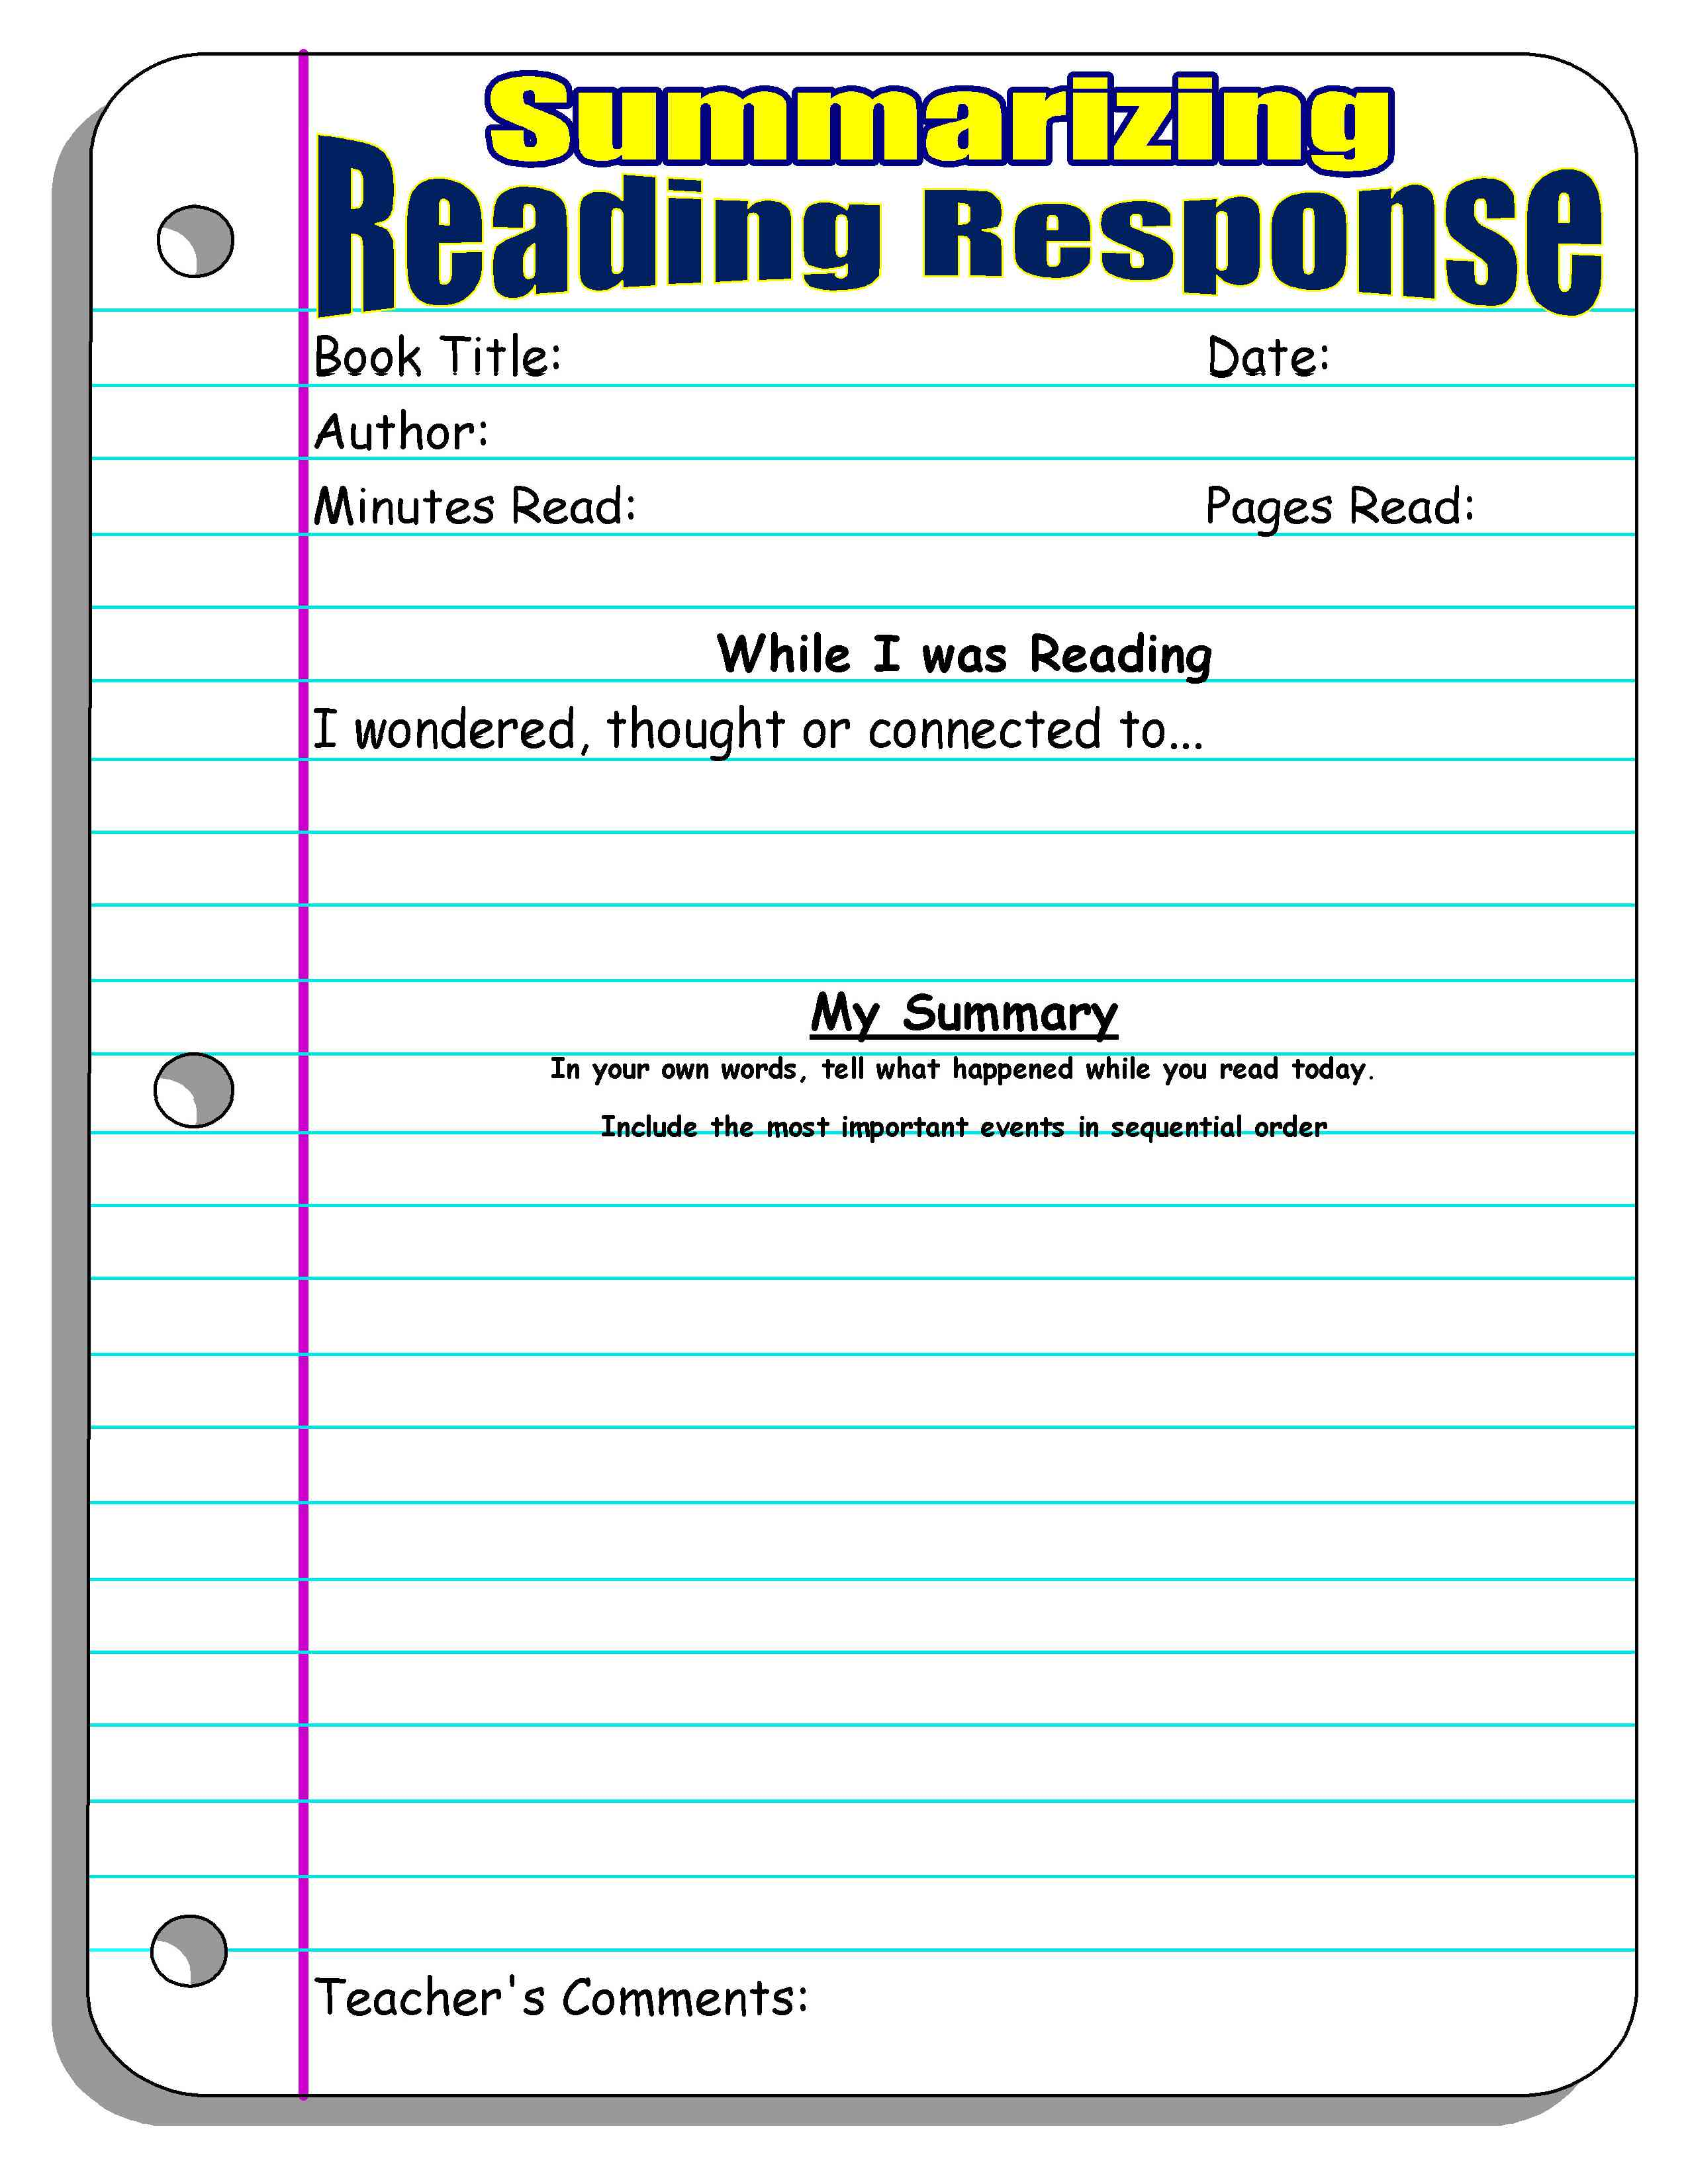 Printables Summarizing Worksheets For 4th Grade summarizing nonfiction worksheets syndeomedia